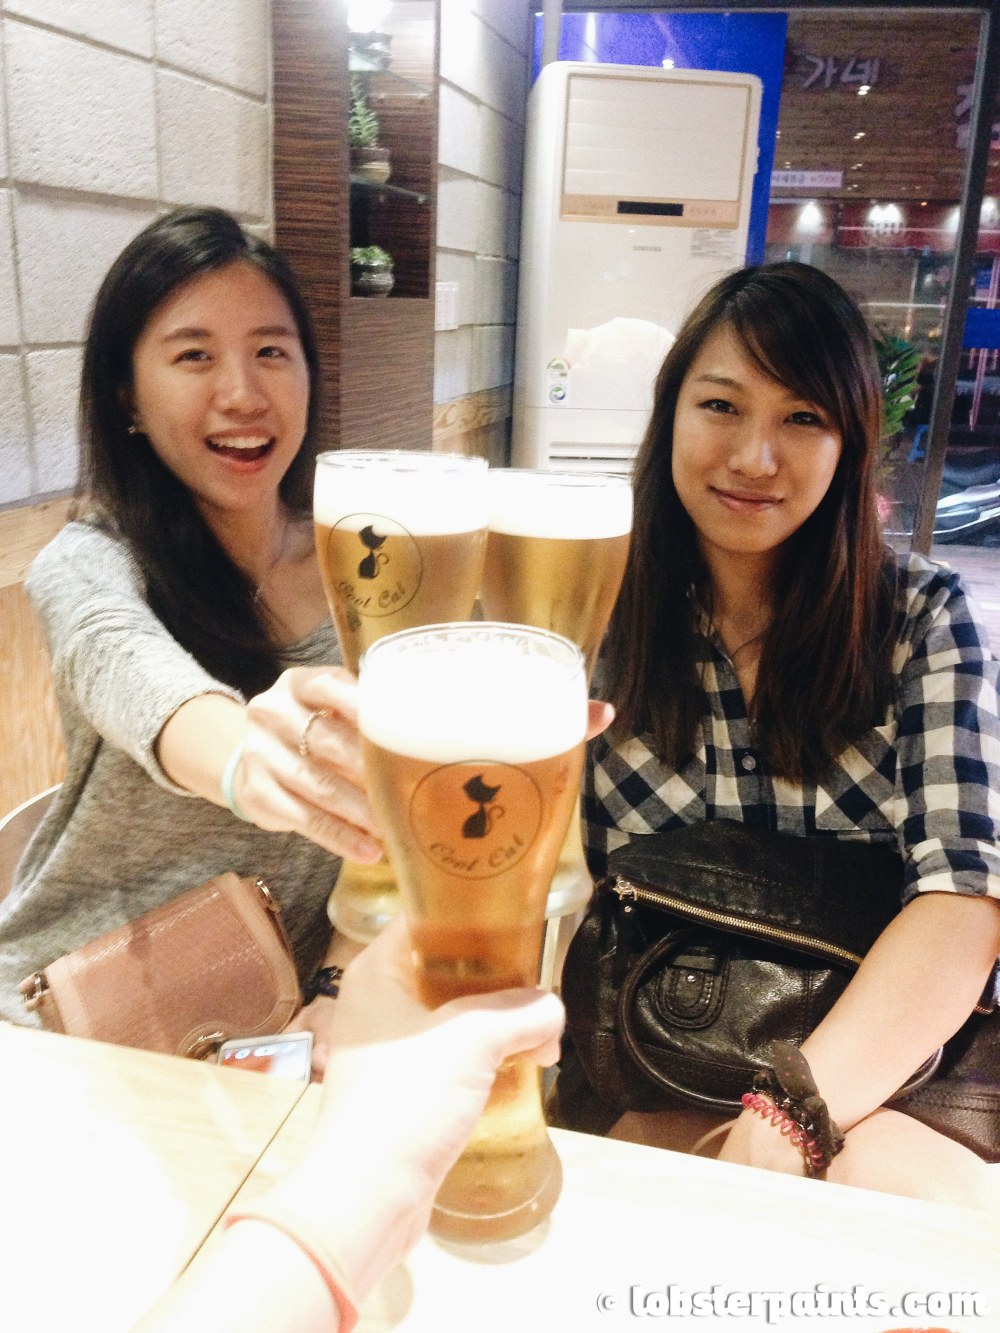 27 Sep 2014: Chicken & Beer at Cool Cat | Busan, South Korea